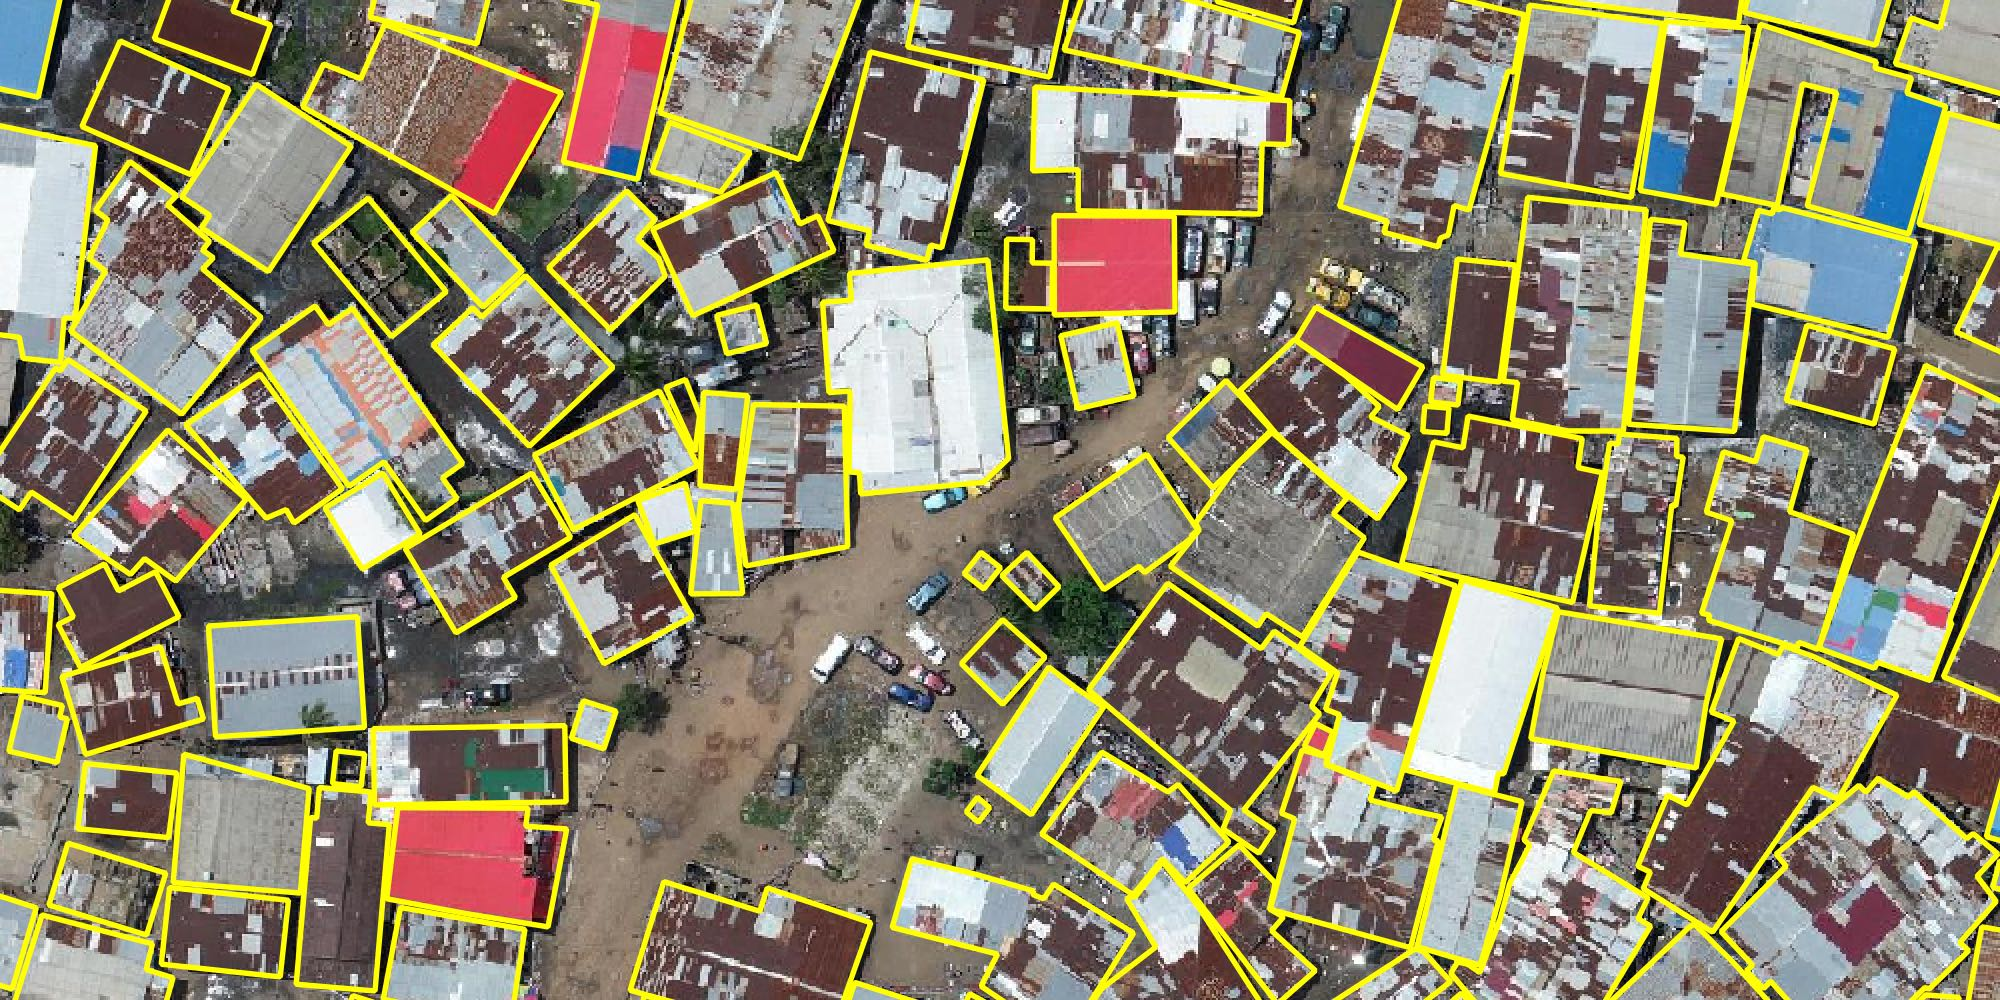 Aerial image of numerous buildings in a city, overlaid with yellow outlines to be used for digital mapping services.